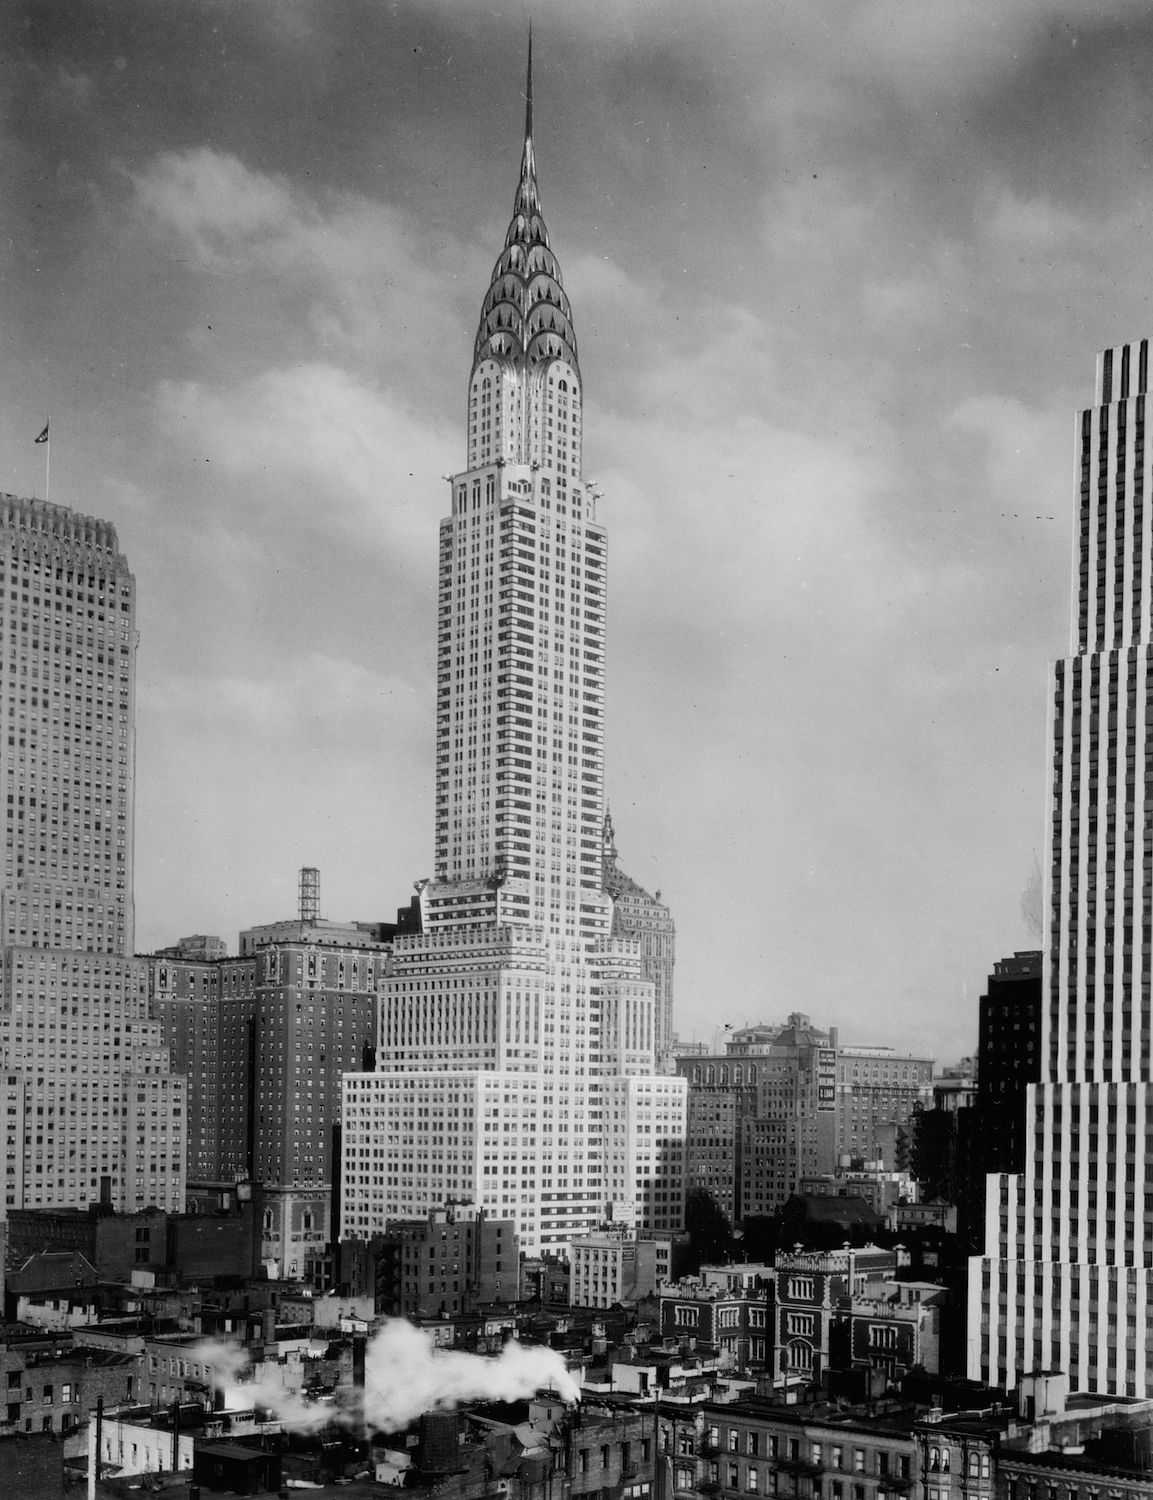 Chrysler Building And Midtown 1930 Http Nycpast Tumblr Com